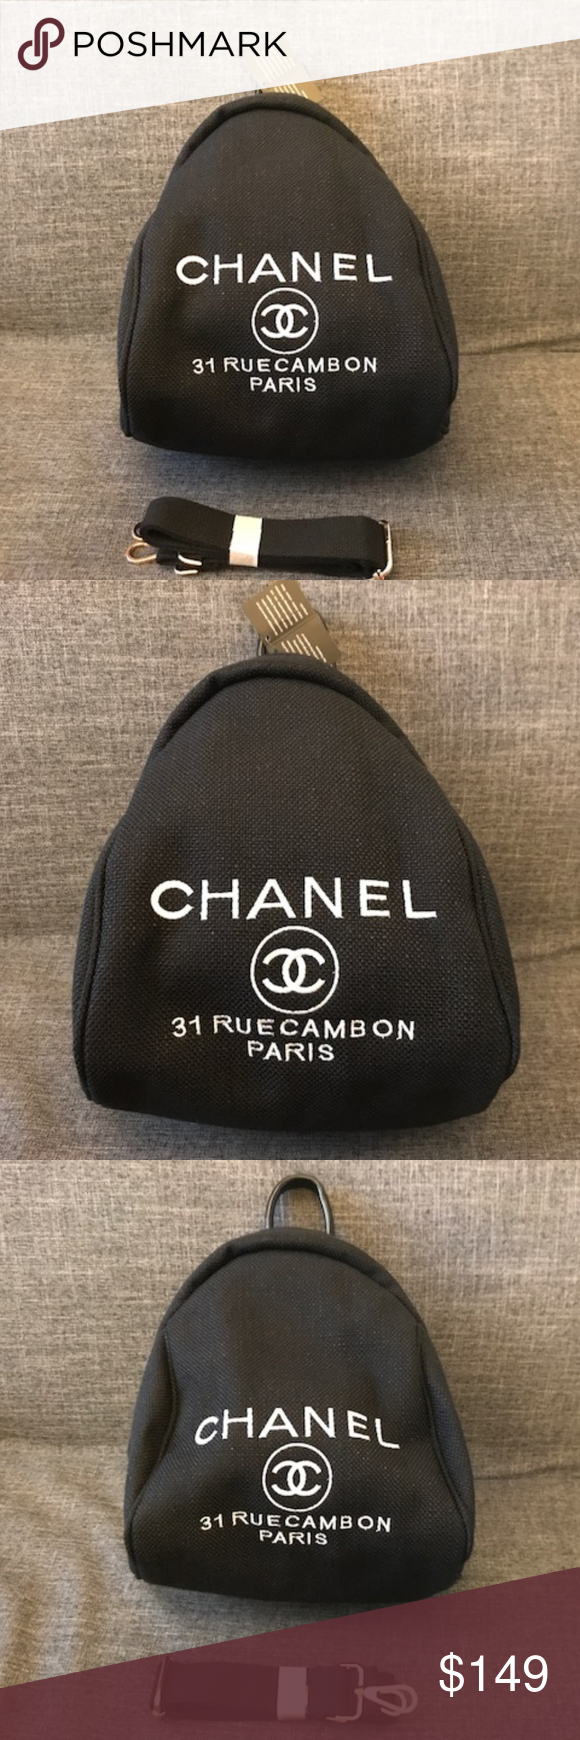 42f8ead3fe869d Chanel backpack Vip Gift Cross Body Bag New Black Authentic Brand New Chanel  Canvas Cross Body